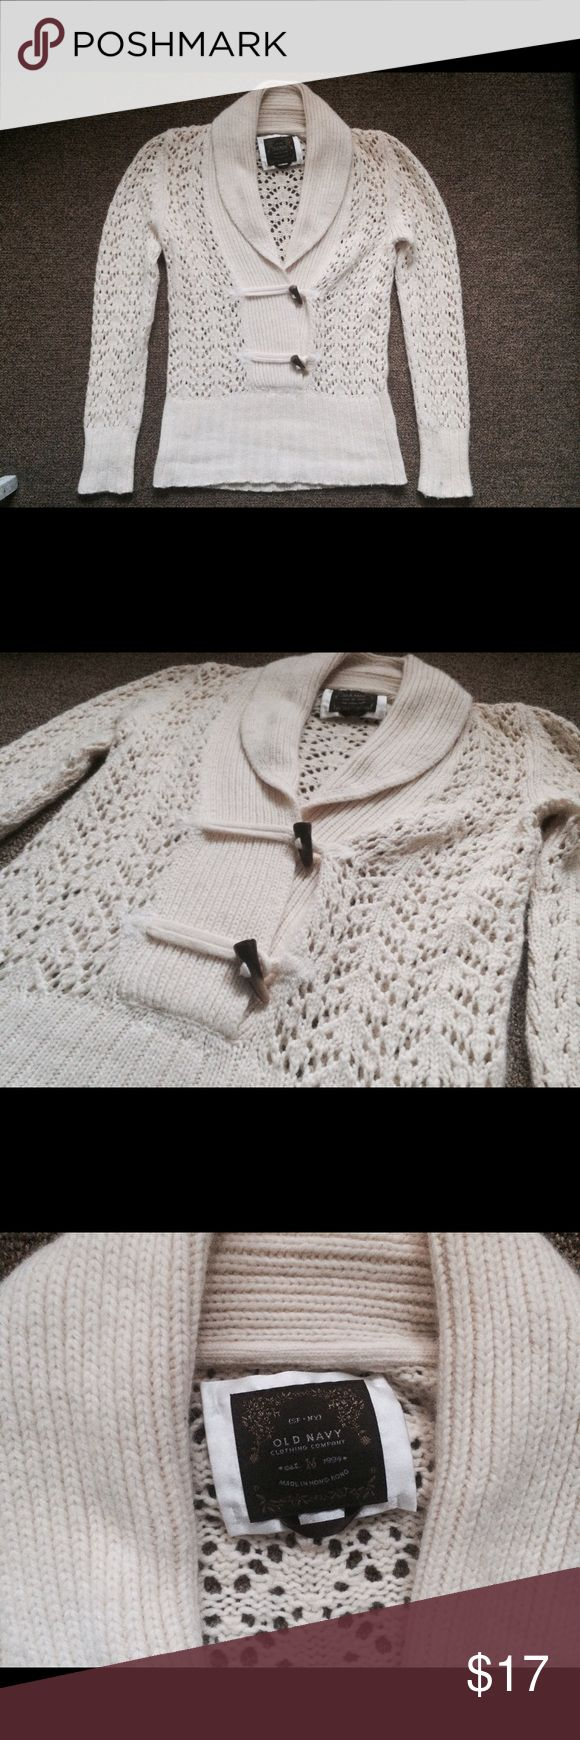 Cream Old Navy Sweater Gorgeous cream Old Navy sweater in excellent condition, size M. Ships quickly with 100% recycled materials! Old Navy Sweaters